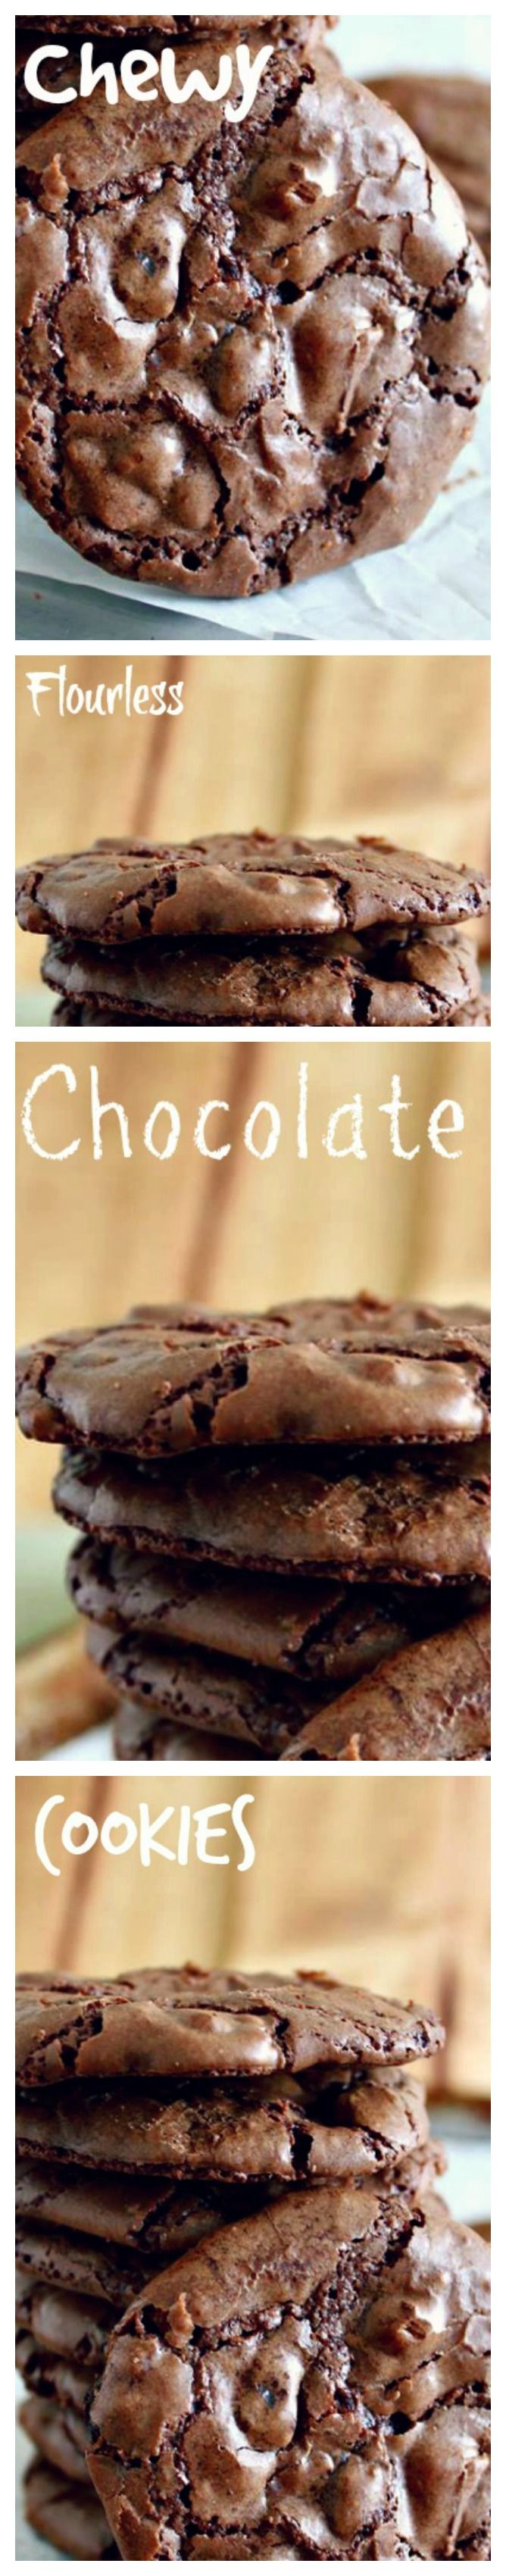 Chewy Chocolate Cookies Best 25 Chewy Chocolate Cookies Ideas On Pinterest Chocolate